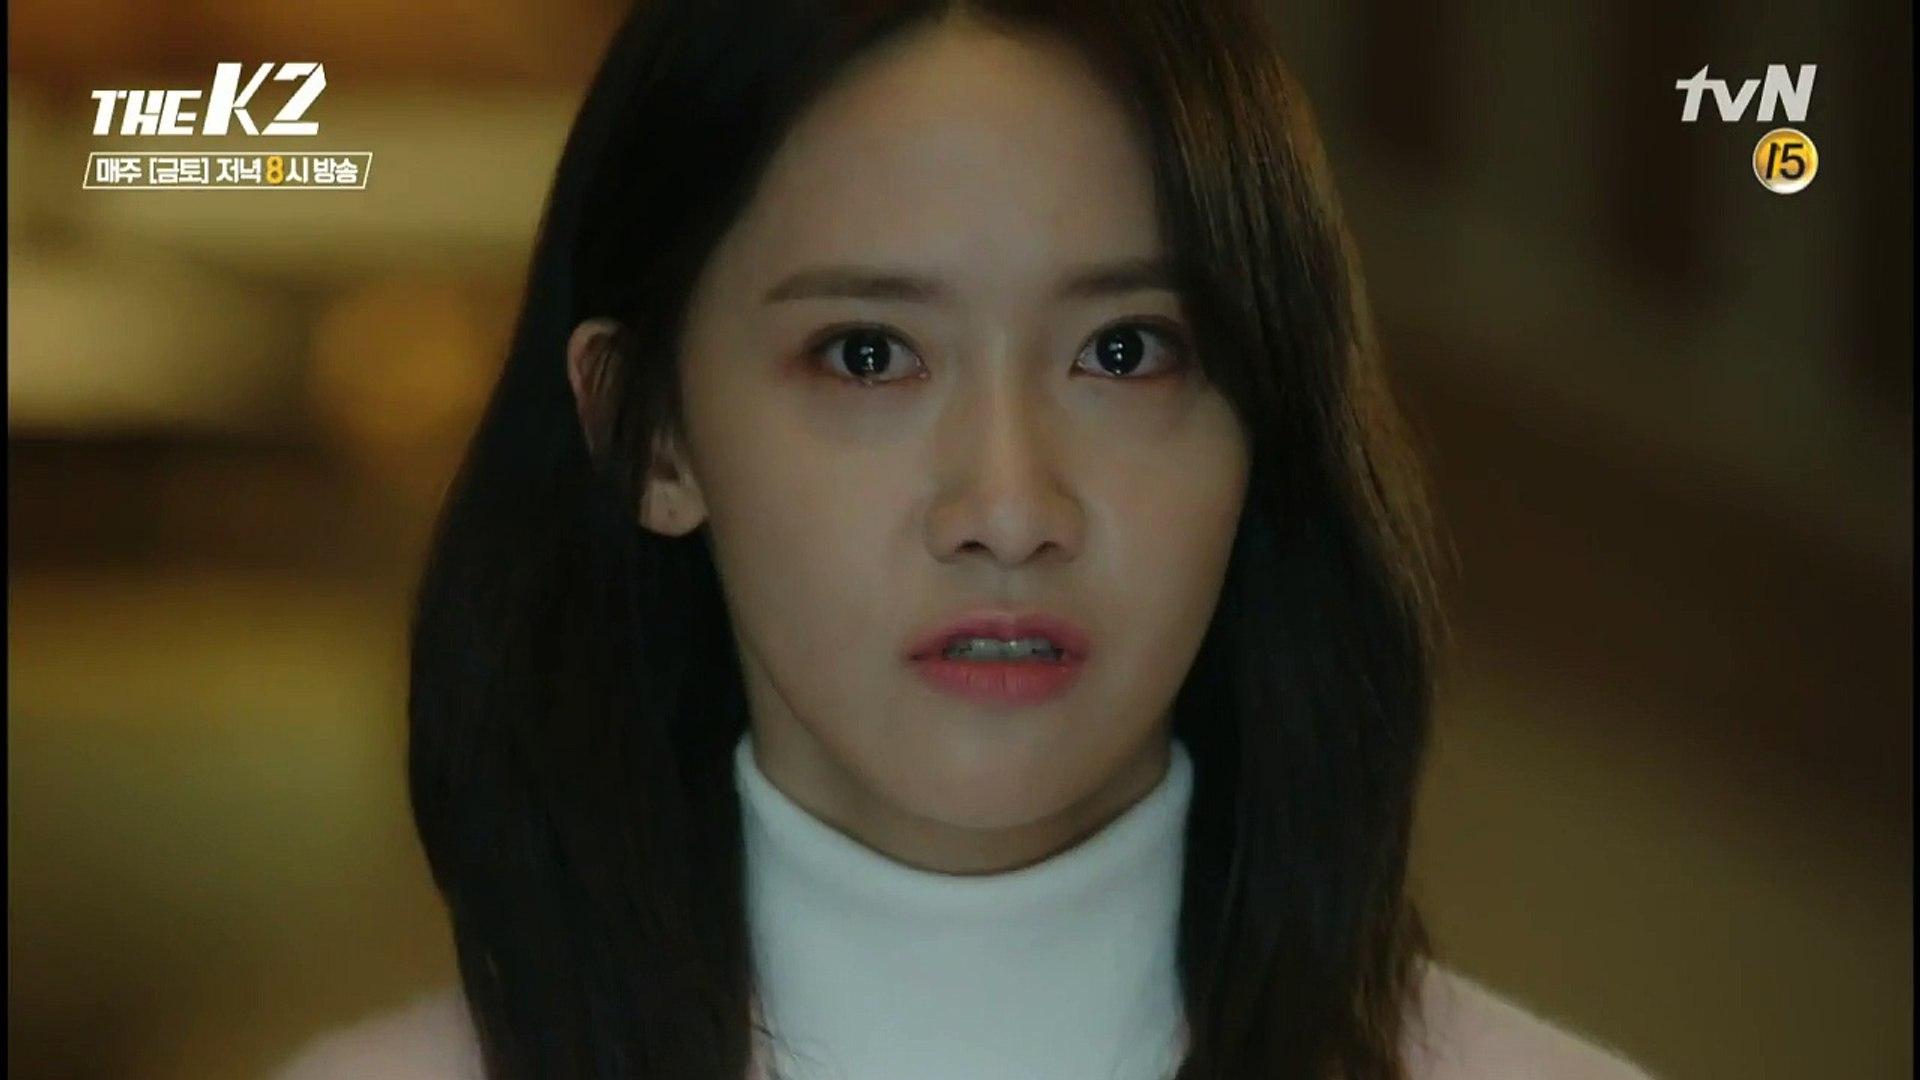 The K2 Episode 13 Preview